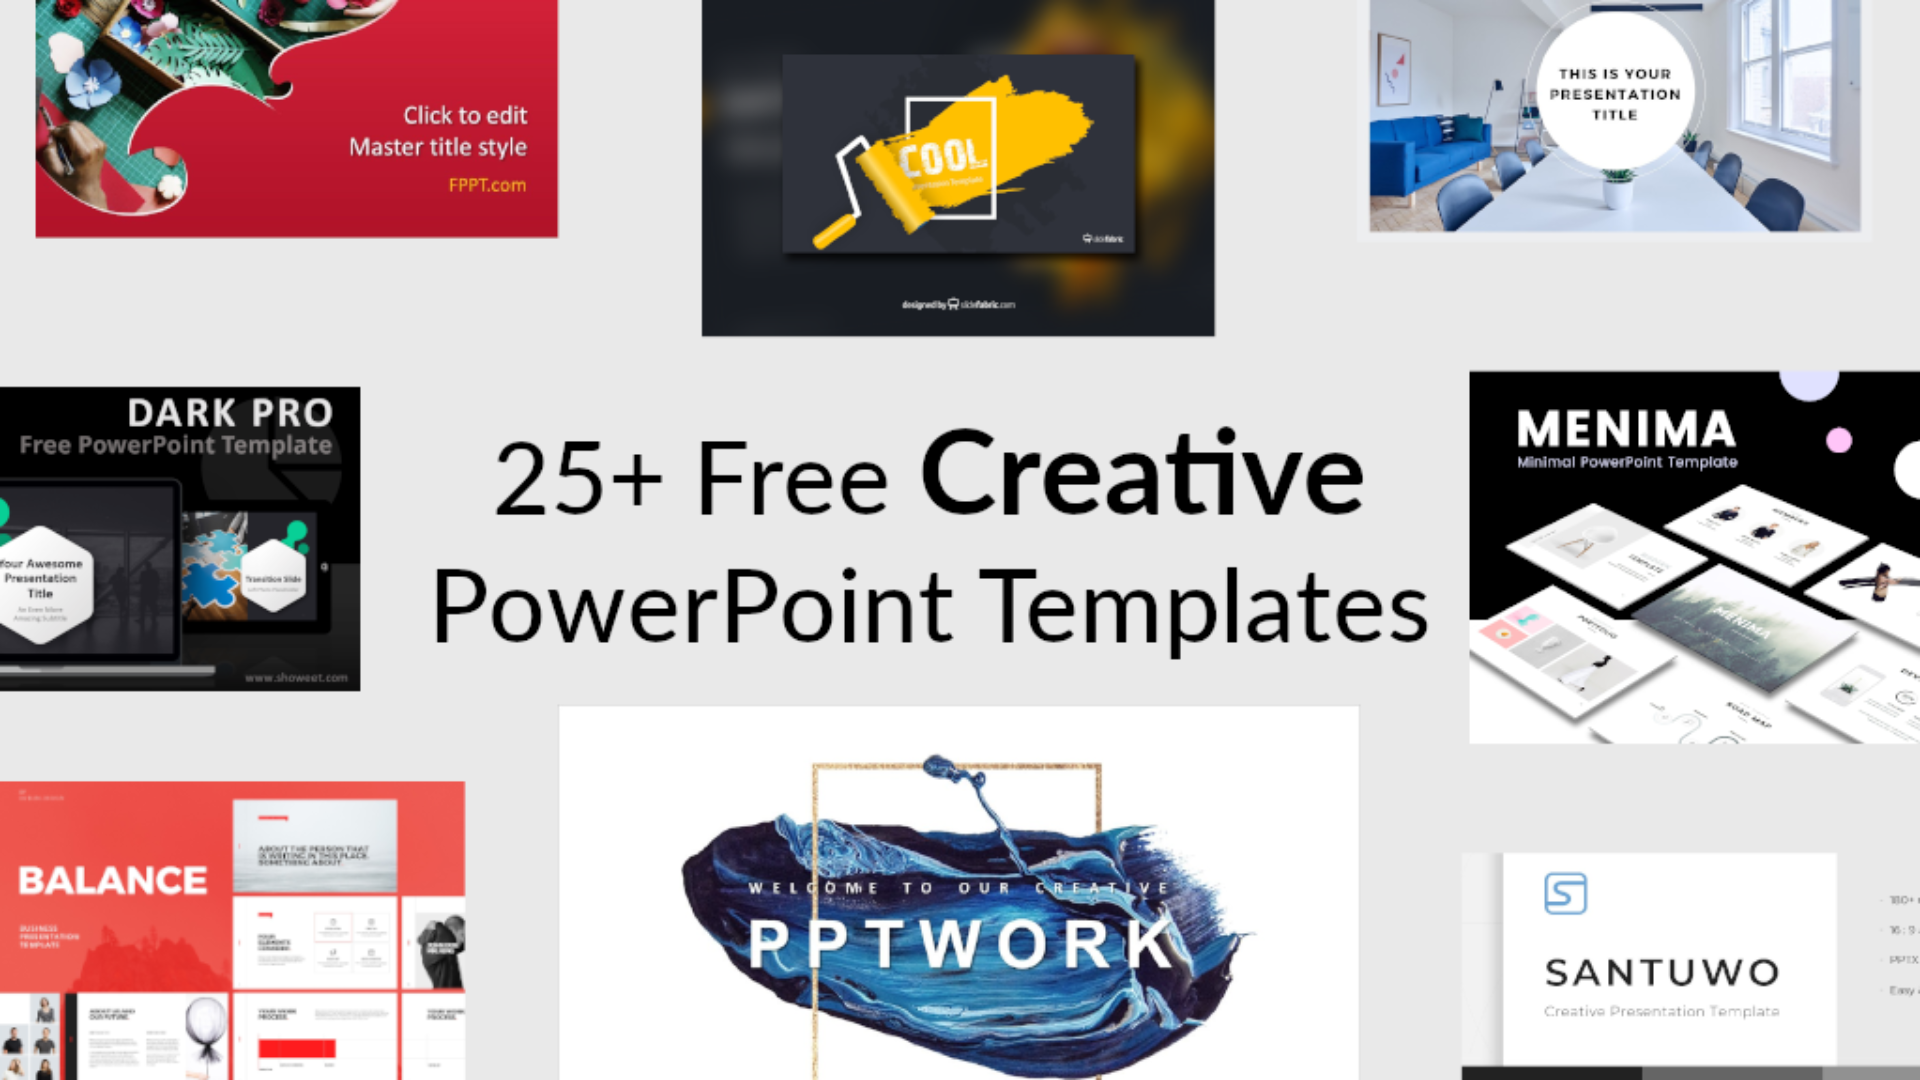 A049 Creative Powerpoint Template | Wiring Resources